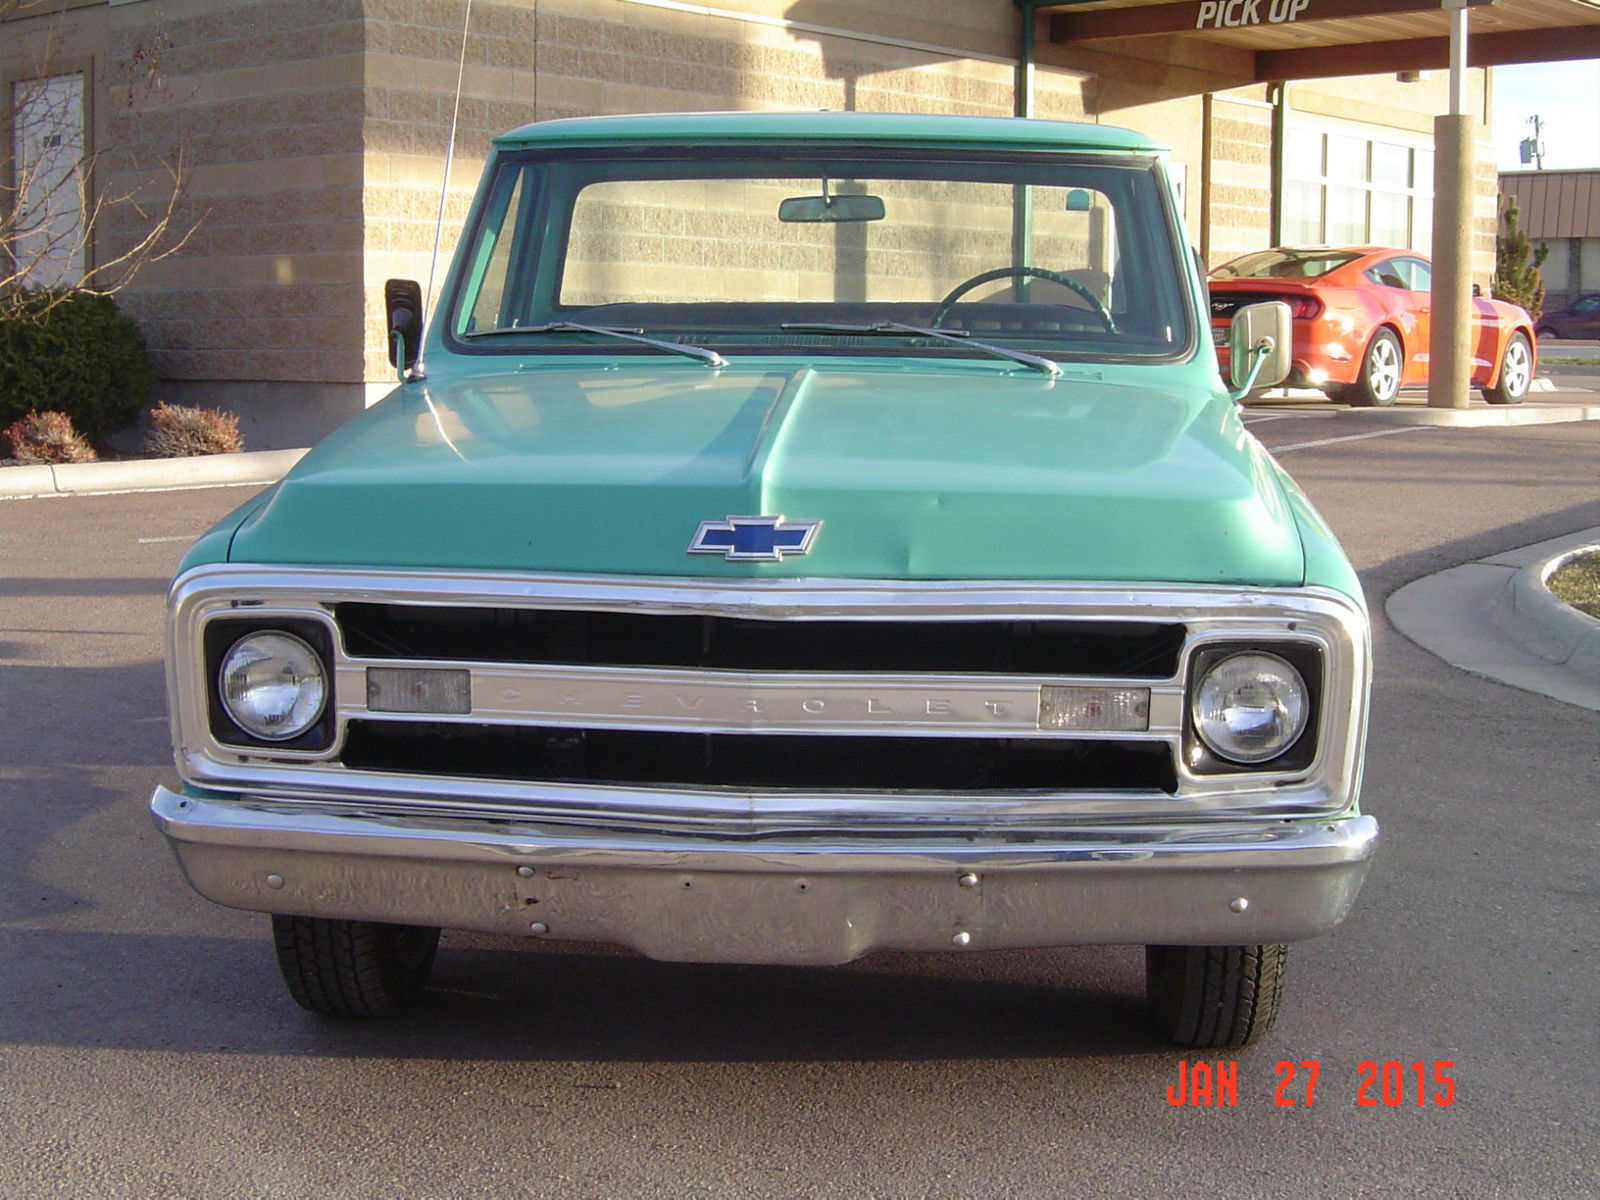 Original 1969 C10 Short Box Step Side 2 Wheel Drive Half Ton Pickup 1966 Chevrolet Truck 12 Pu 2wd 4 For Sale In Great Falls Montana United States